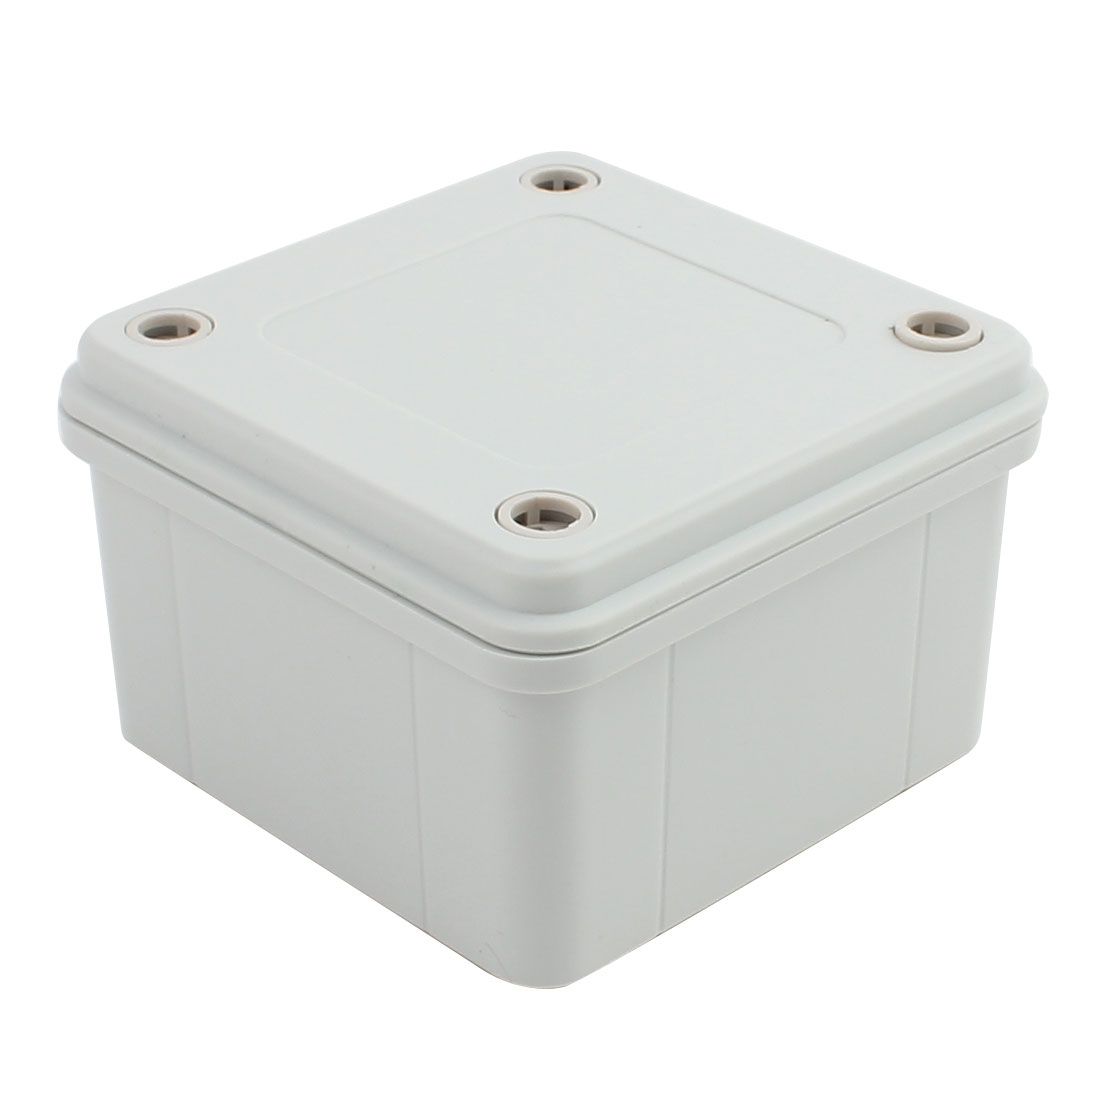 96mm x 96mm x 60mm ABS Enclosure DIY Junction Box Case Gray